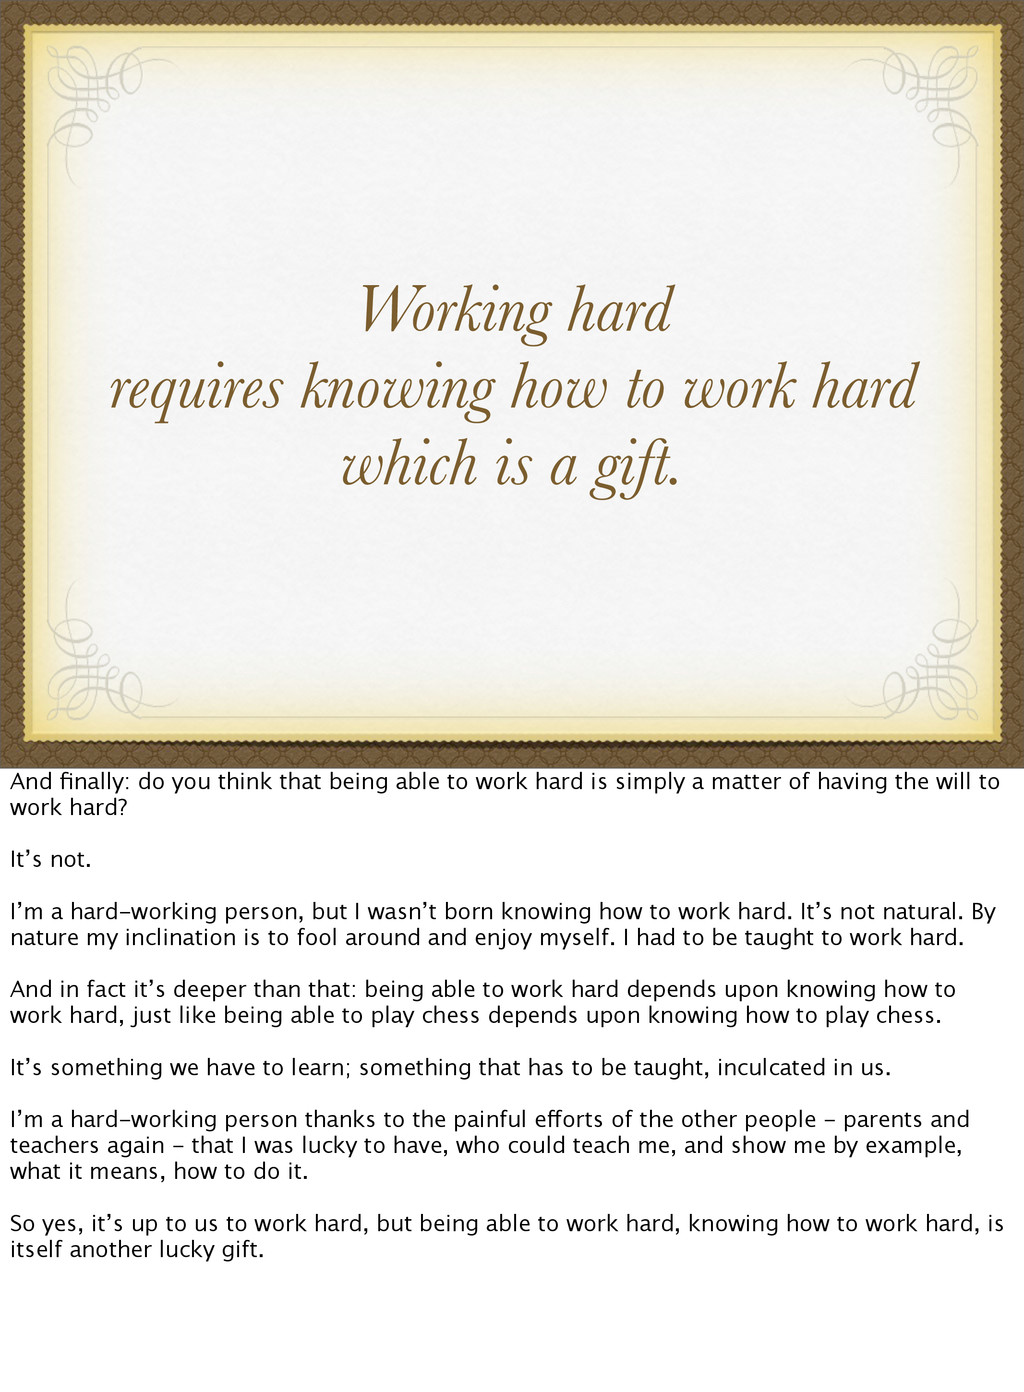 Working hard requires knowing how to work hard ...